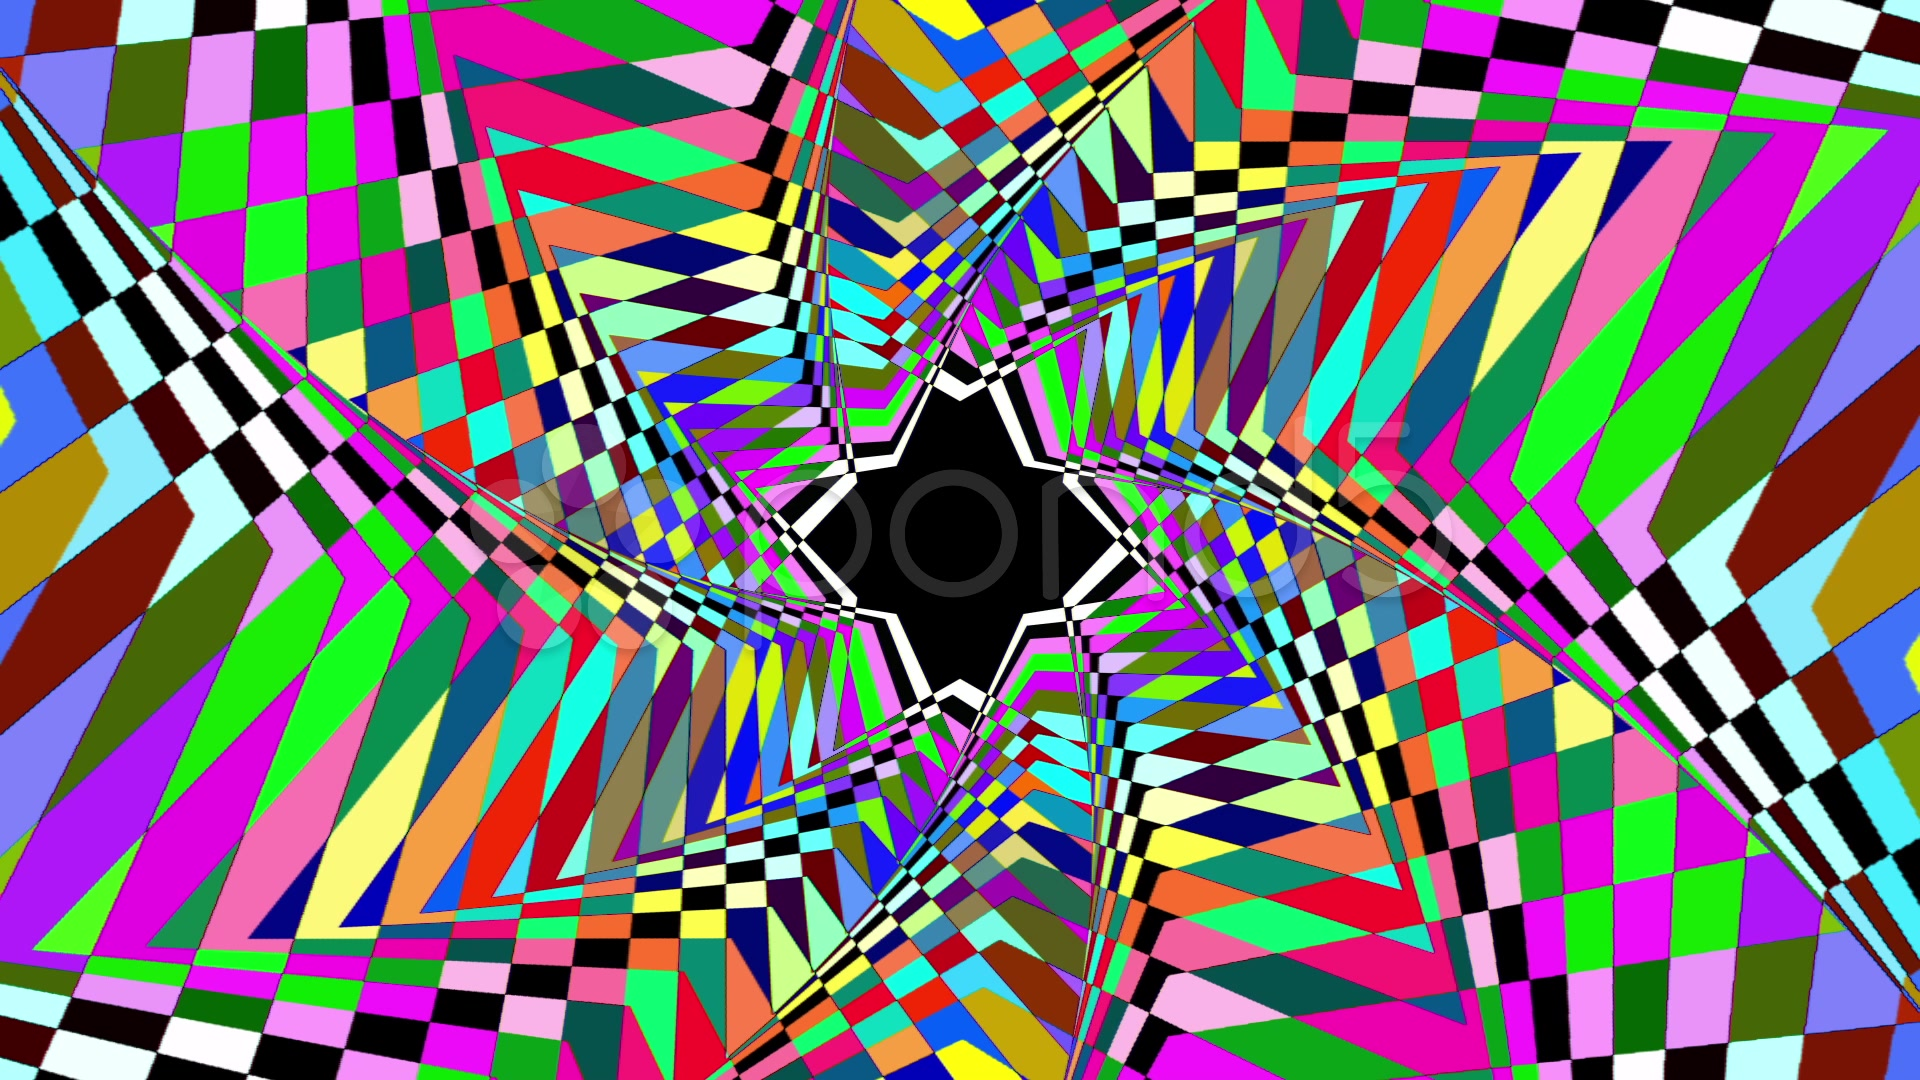 Psychedelic Background Animated